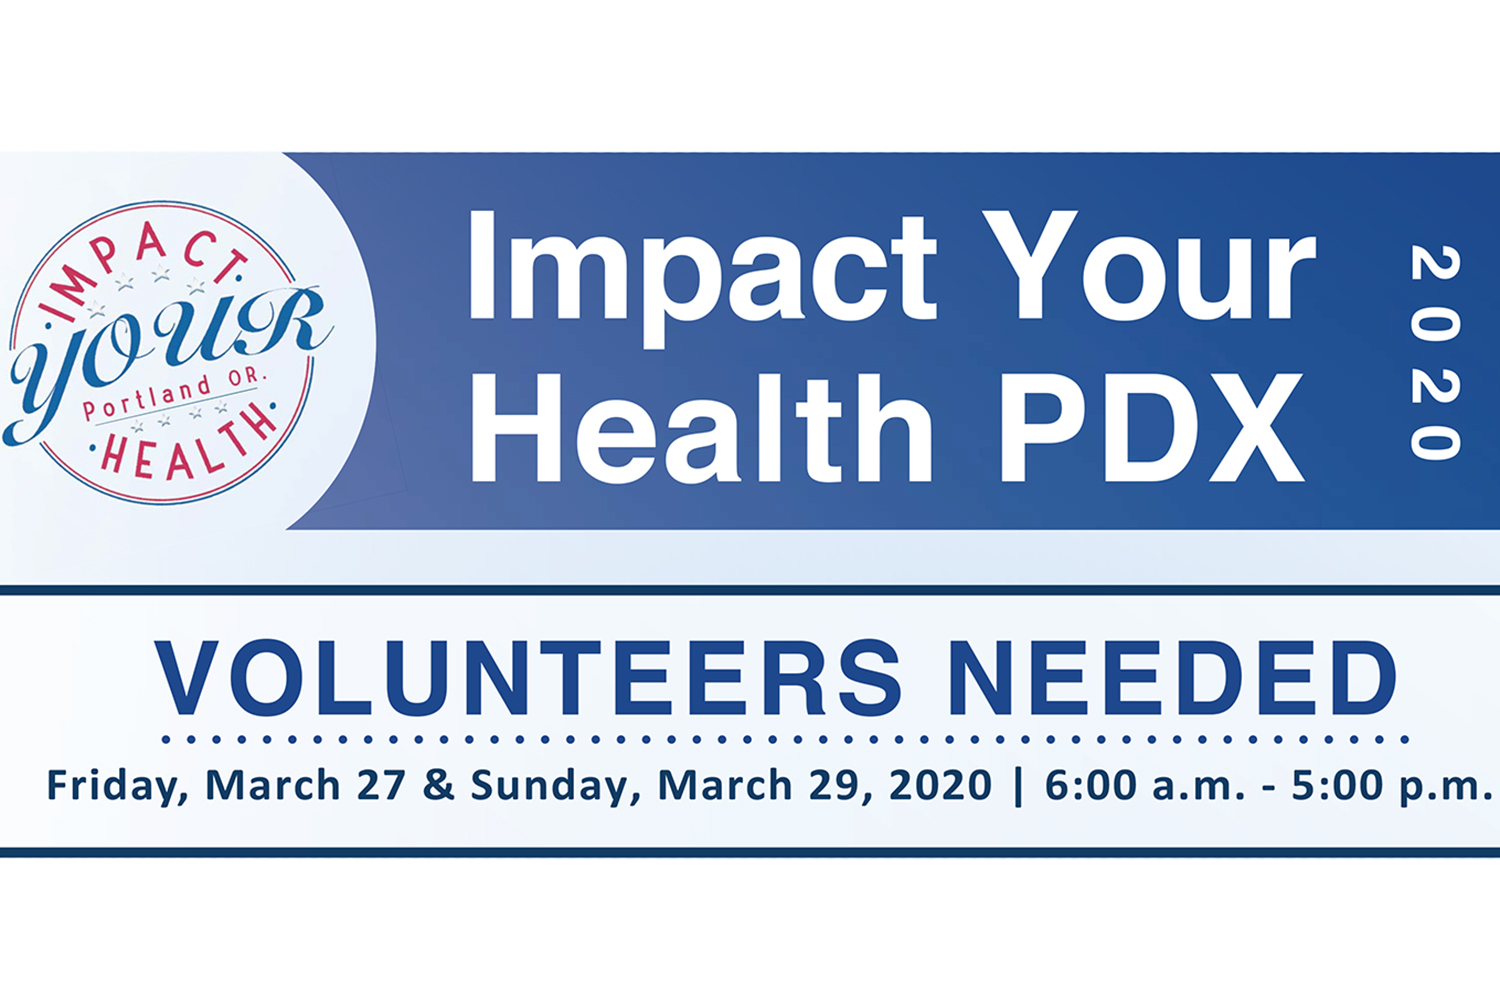 Impact Your Health Portland 2020 Needs Volunteers!